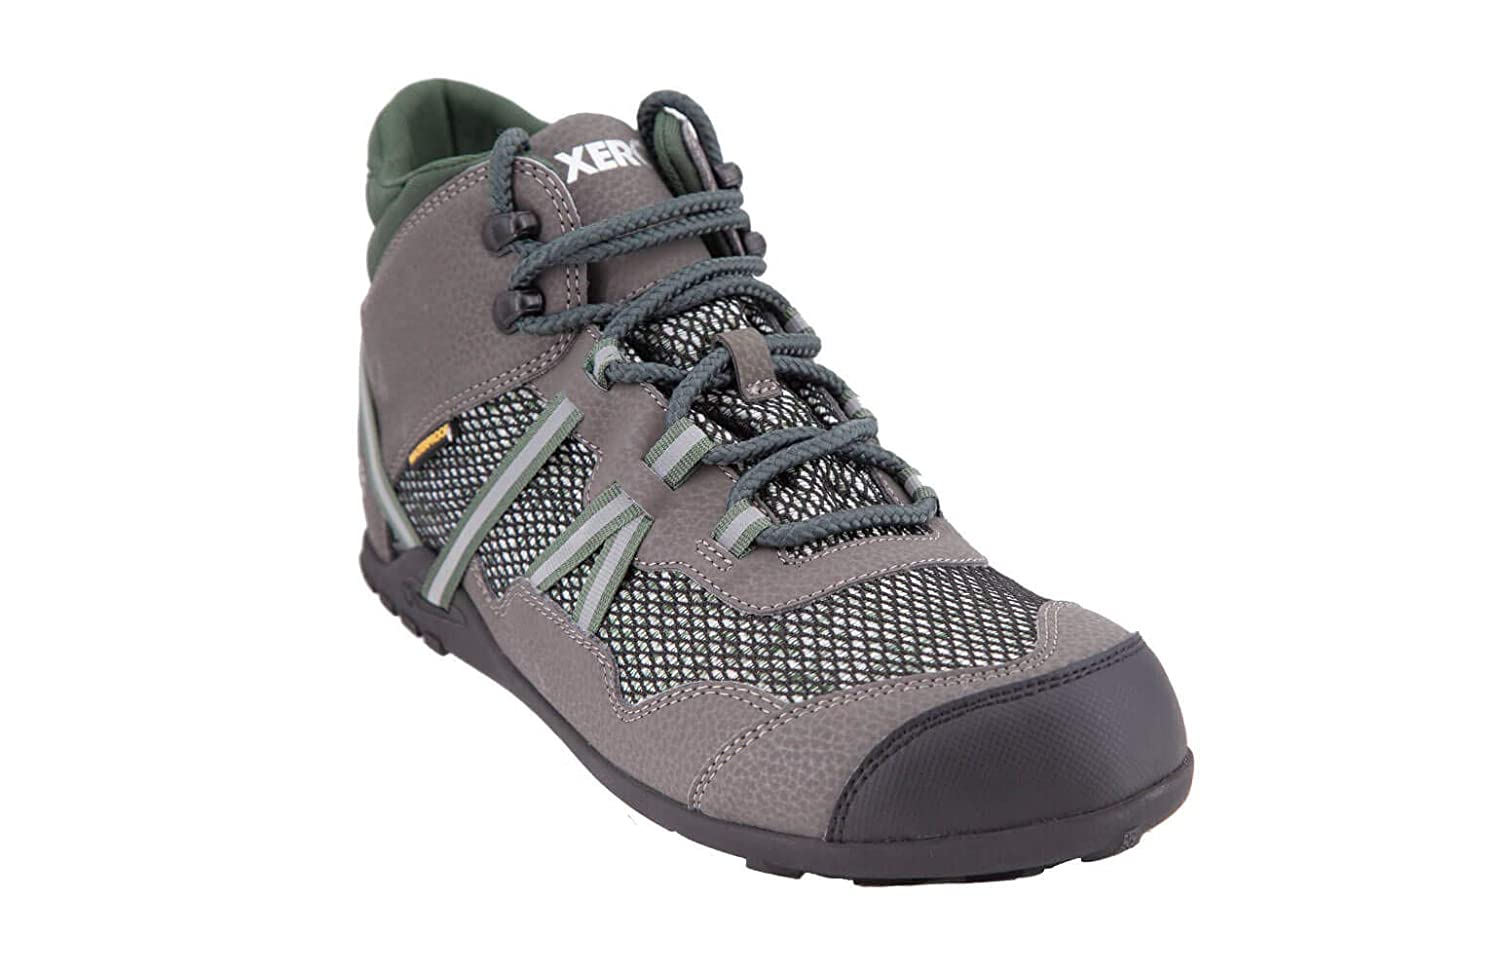 Xero Shoes Xcursion Women S Waterproof Minimalist Lightweight Hiking Boot Zero Drop Wide Toe Box Vegan Forst 11 Buy Online At Low Prices In India Amazon In